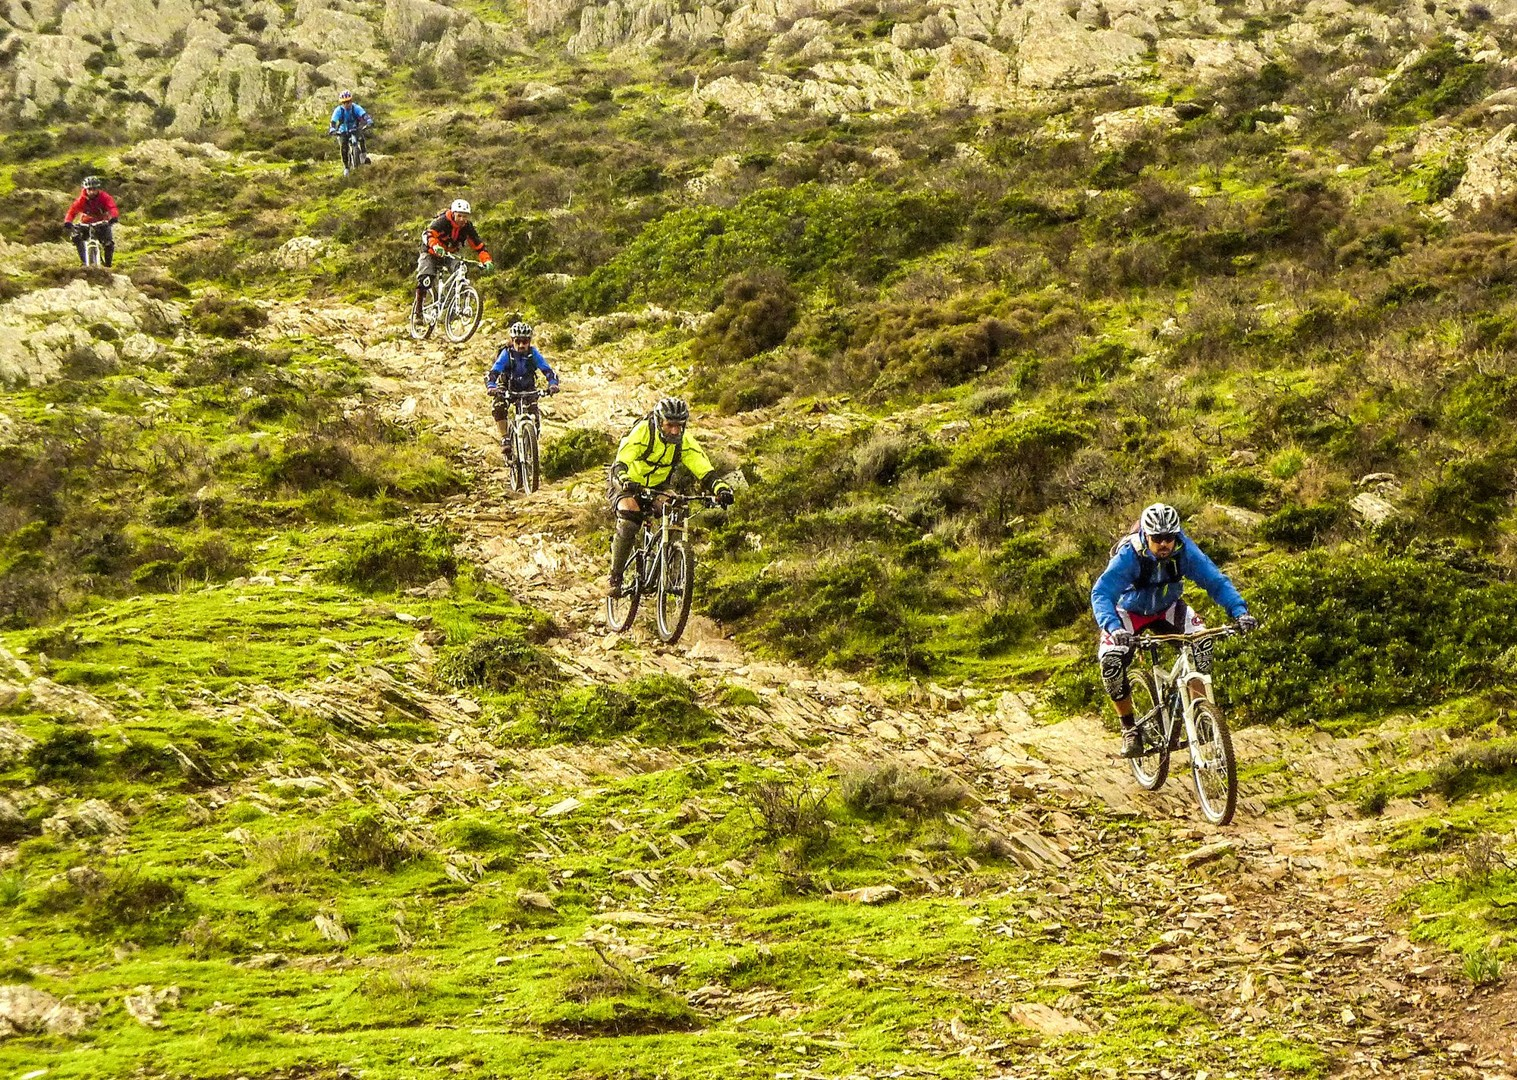 technical-downhill-descents-mountain-biking-italy-sardinia-tour.jpg - Sardinia - Coast to Coast - Mountain Biking